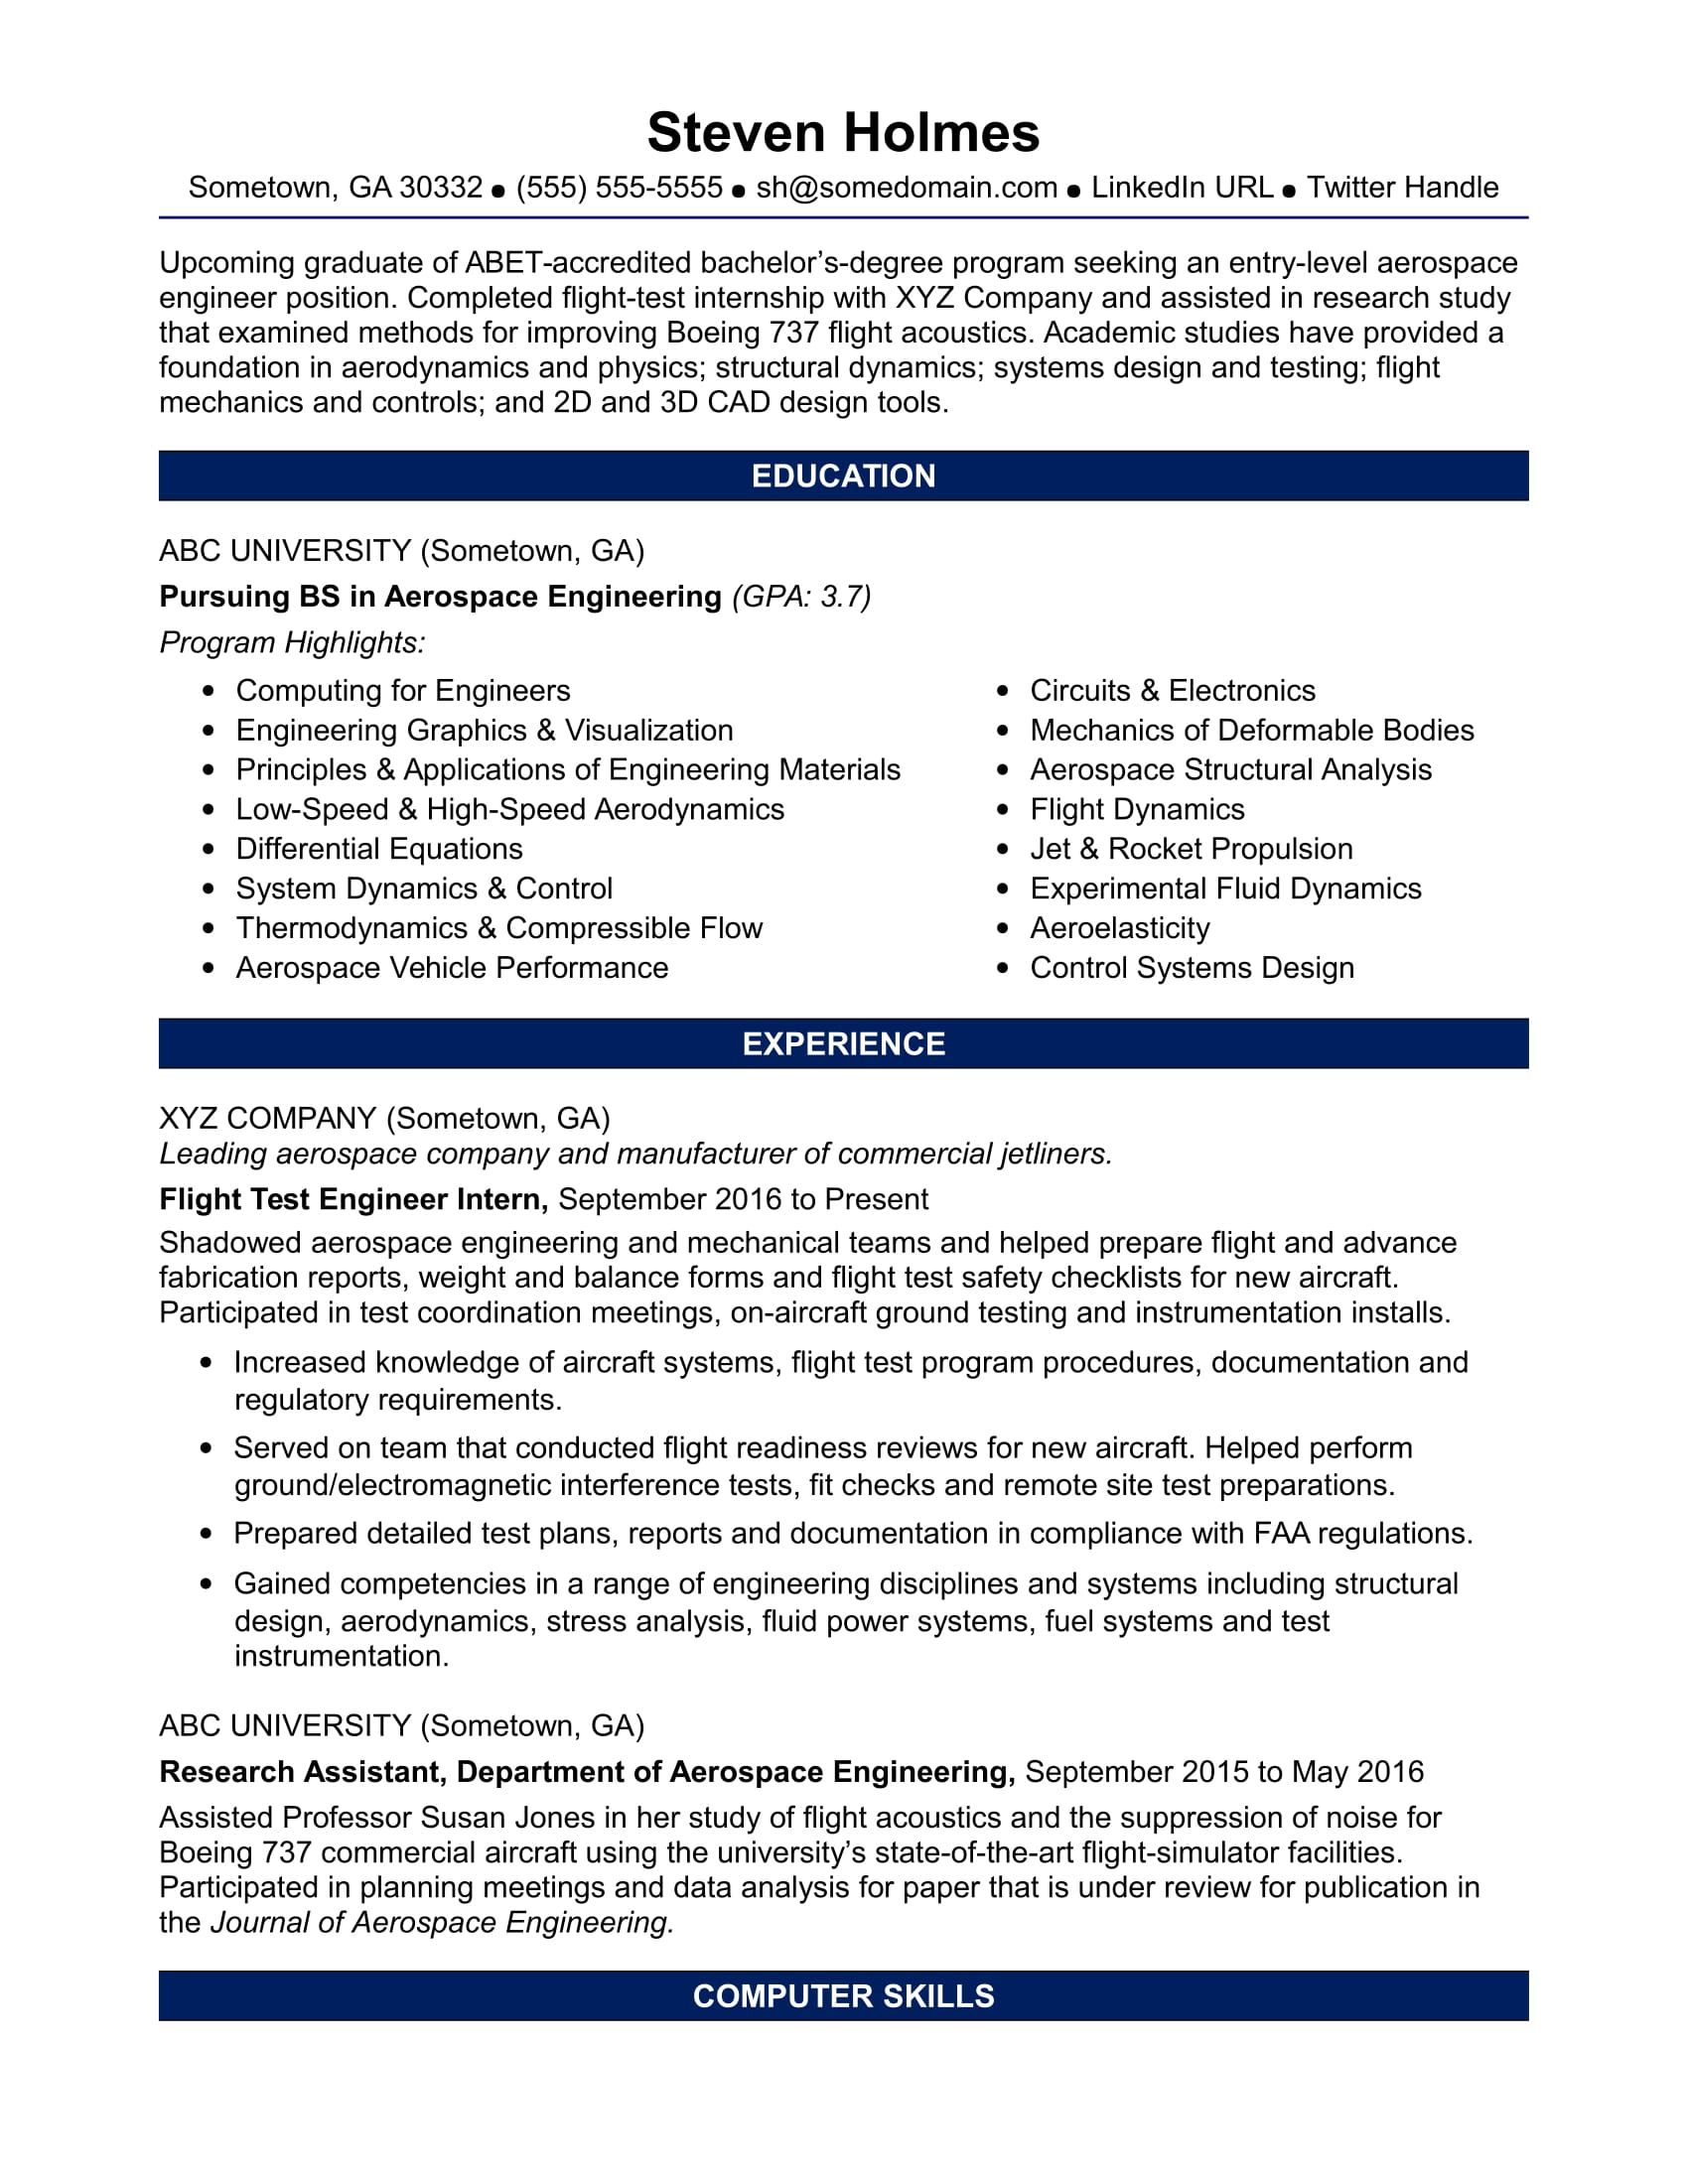 Circuit Design Engineer Cover Letter Sample Resume For An Entry Level Aerospace Engineer Monster